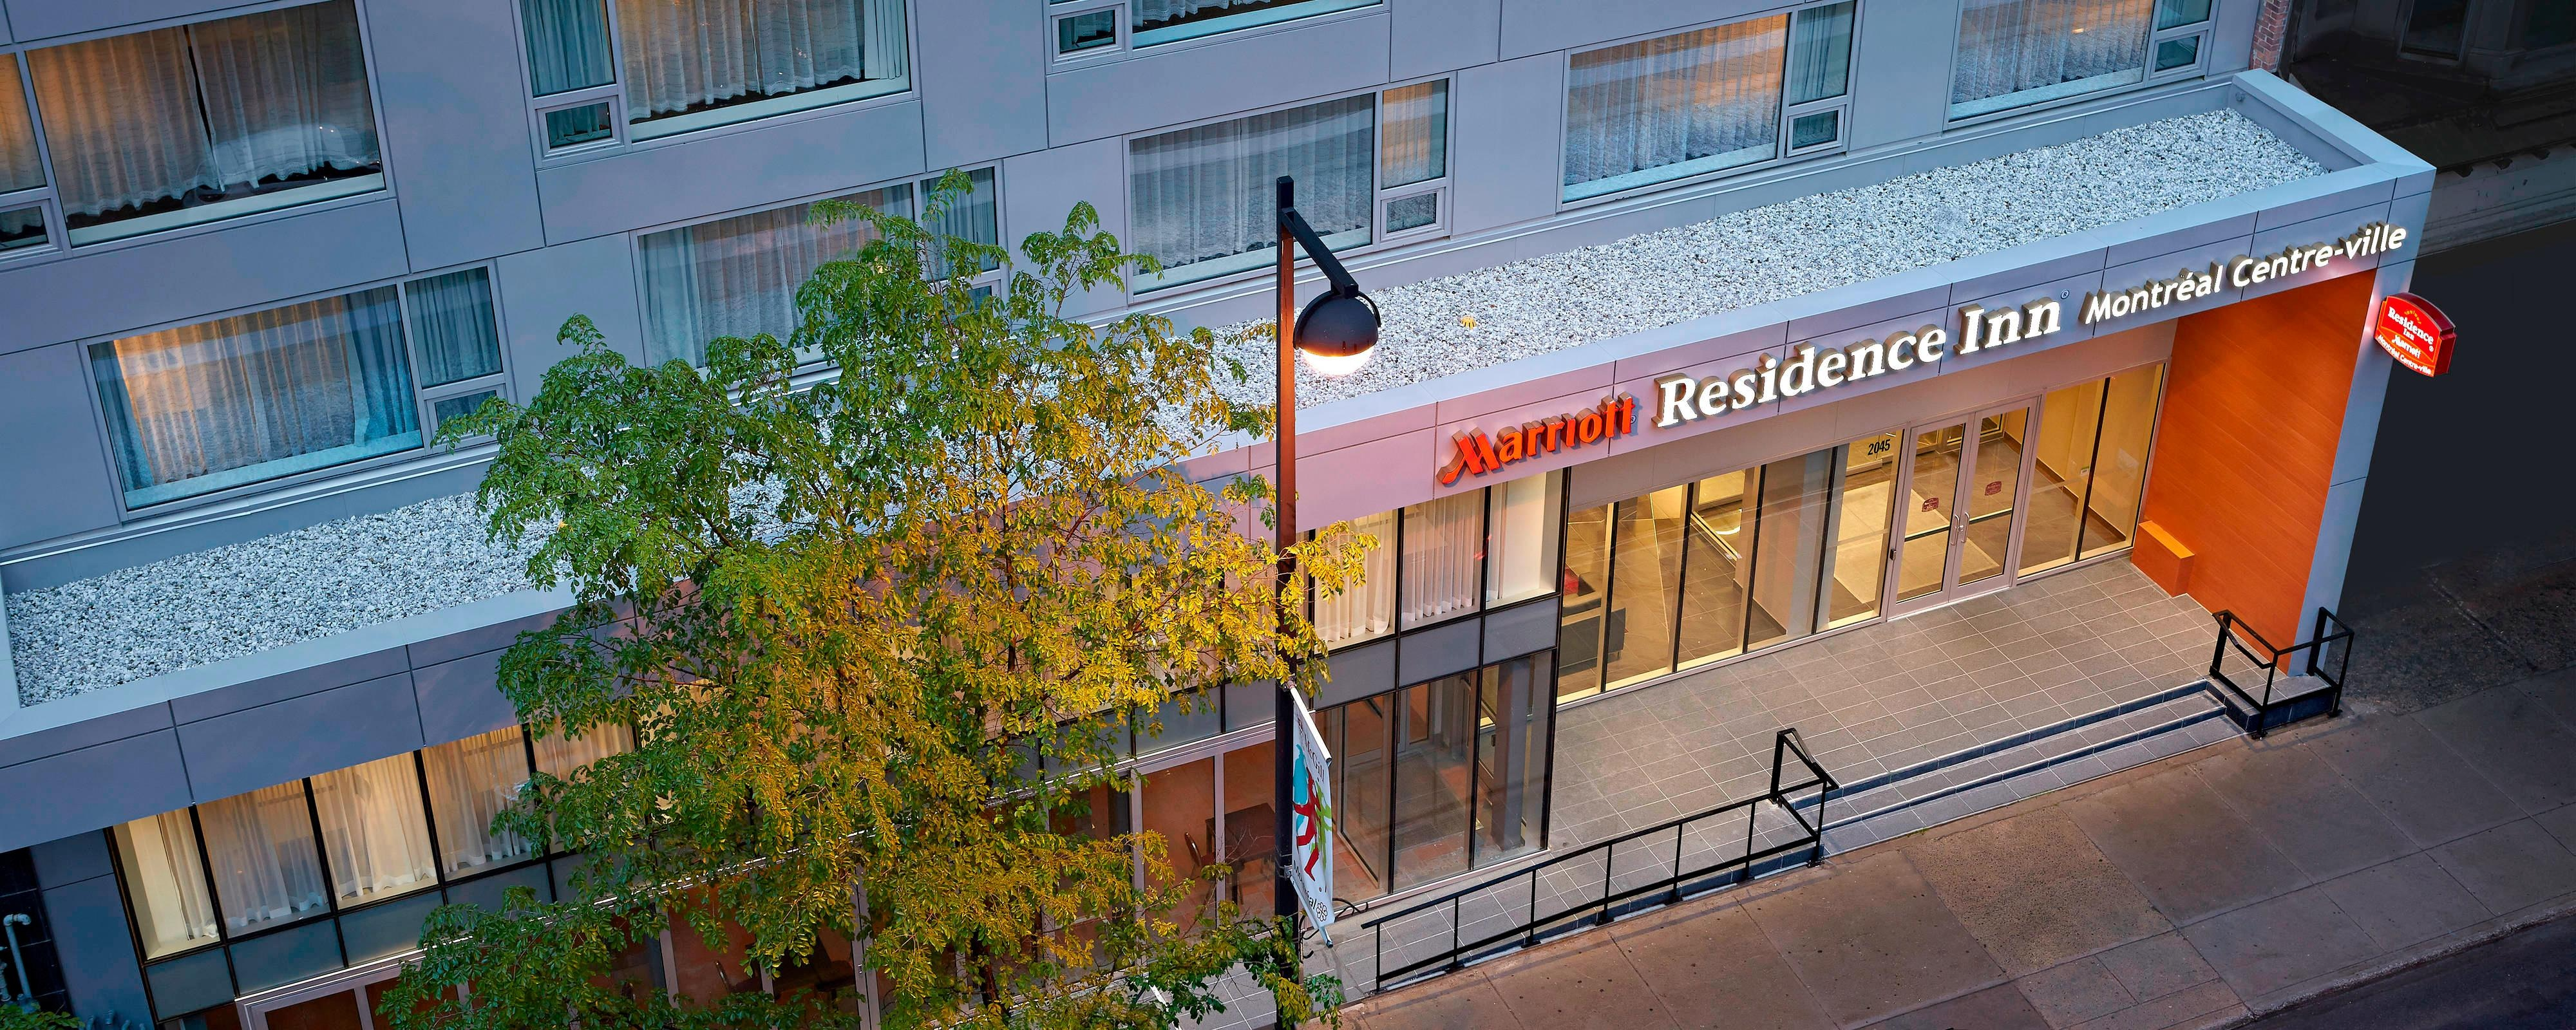 Downtown Montreal Hotels Residence Inn Montreal Downtown